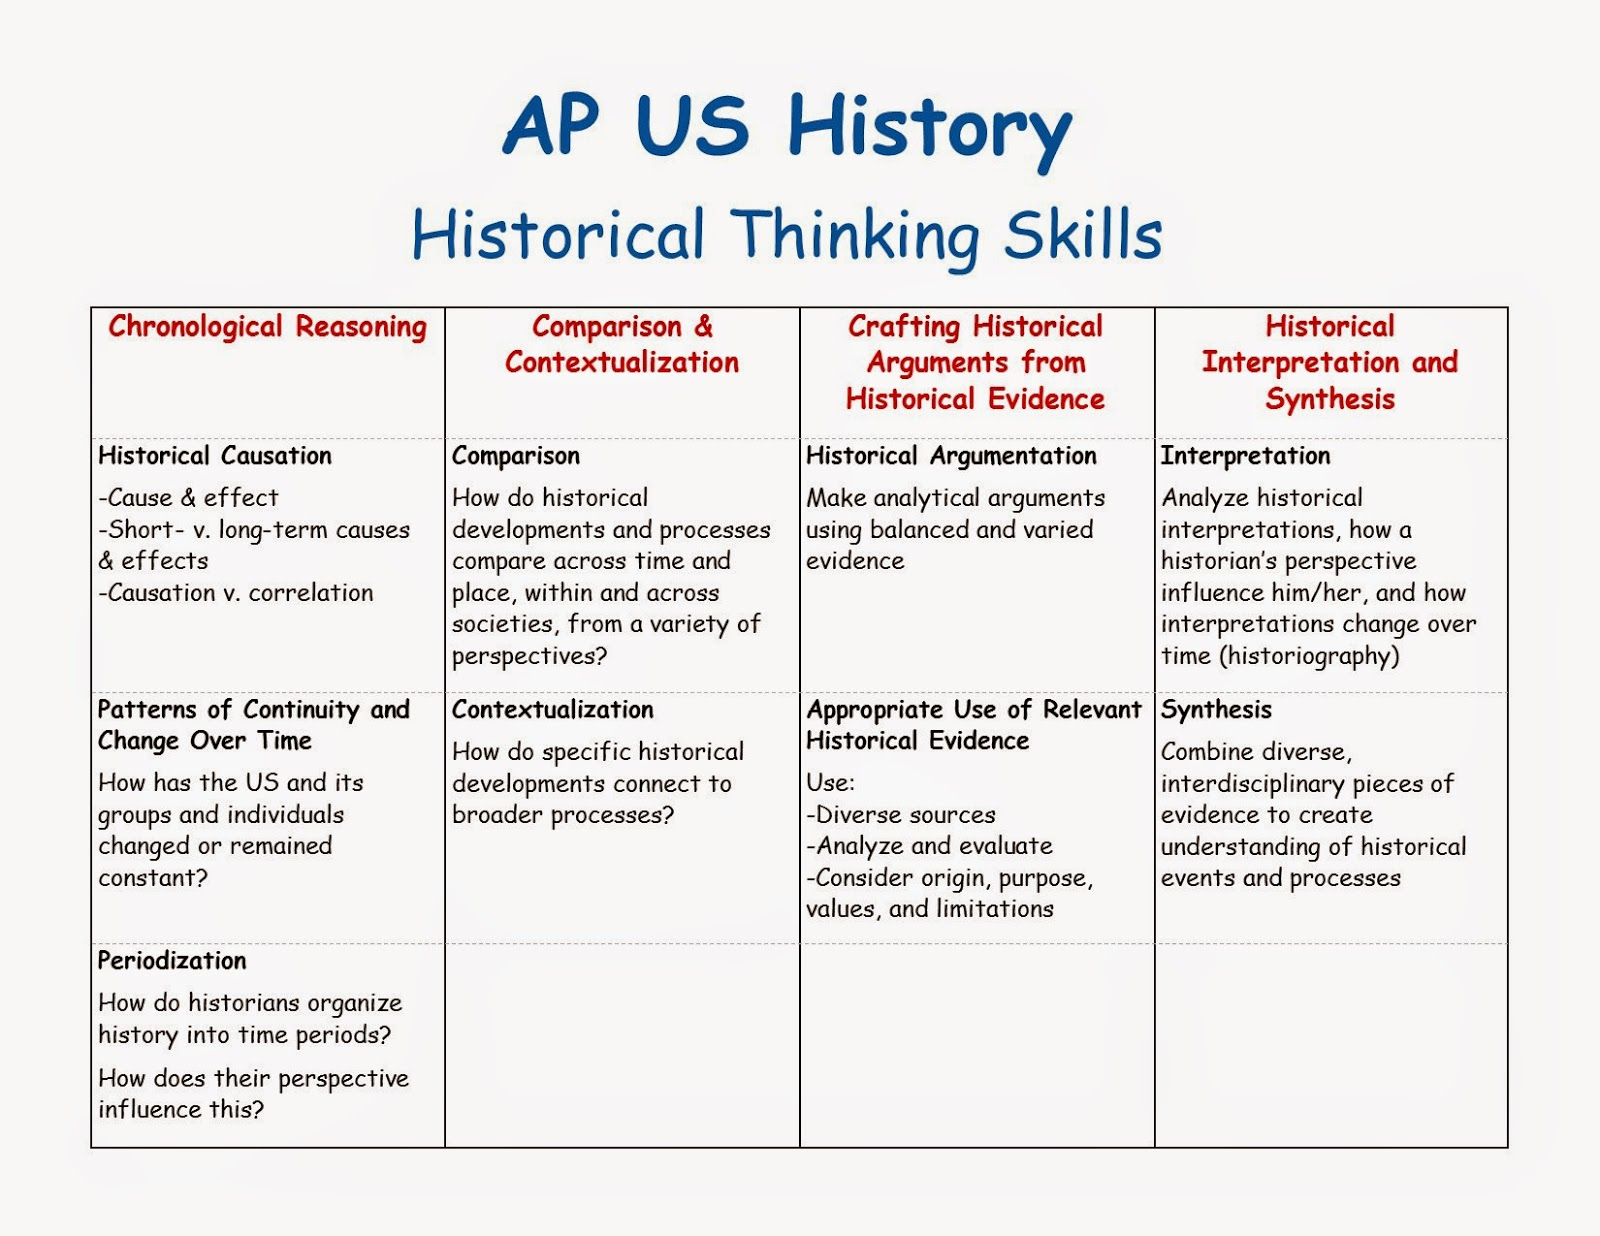 dbq for ap united states history essay Ap us history long essay example 1 or dbq on the ap us history exam in the last video ap us history dbq example 4 up next.